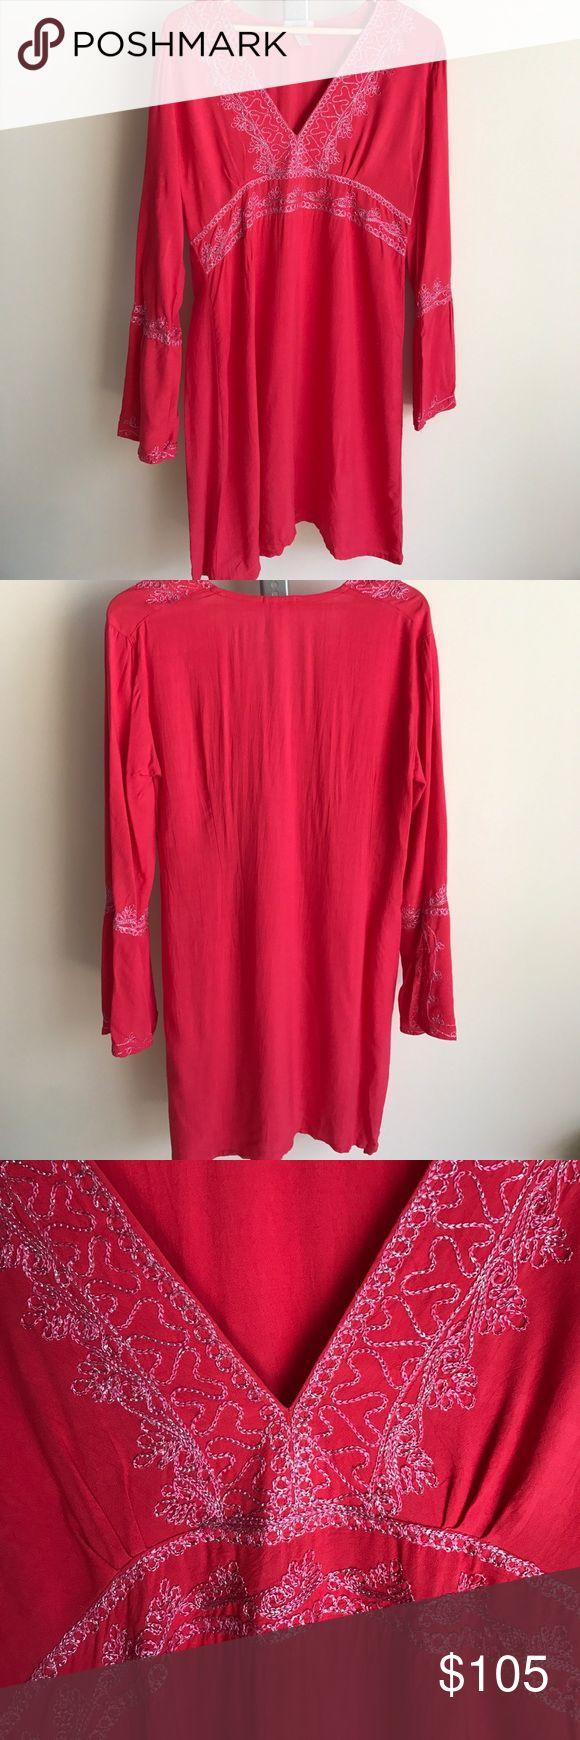 Calypso St. Barth | Embroidered Tunic Embroidered tunic dress from Calypso St. Barth. Pink with pink and silver embroidery. Must have for summer beach vacations and lazy weekend fun in the sun. EUC Calypso St. Barth Swim Coverups